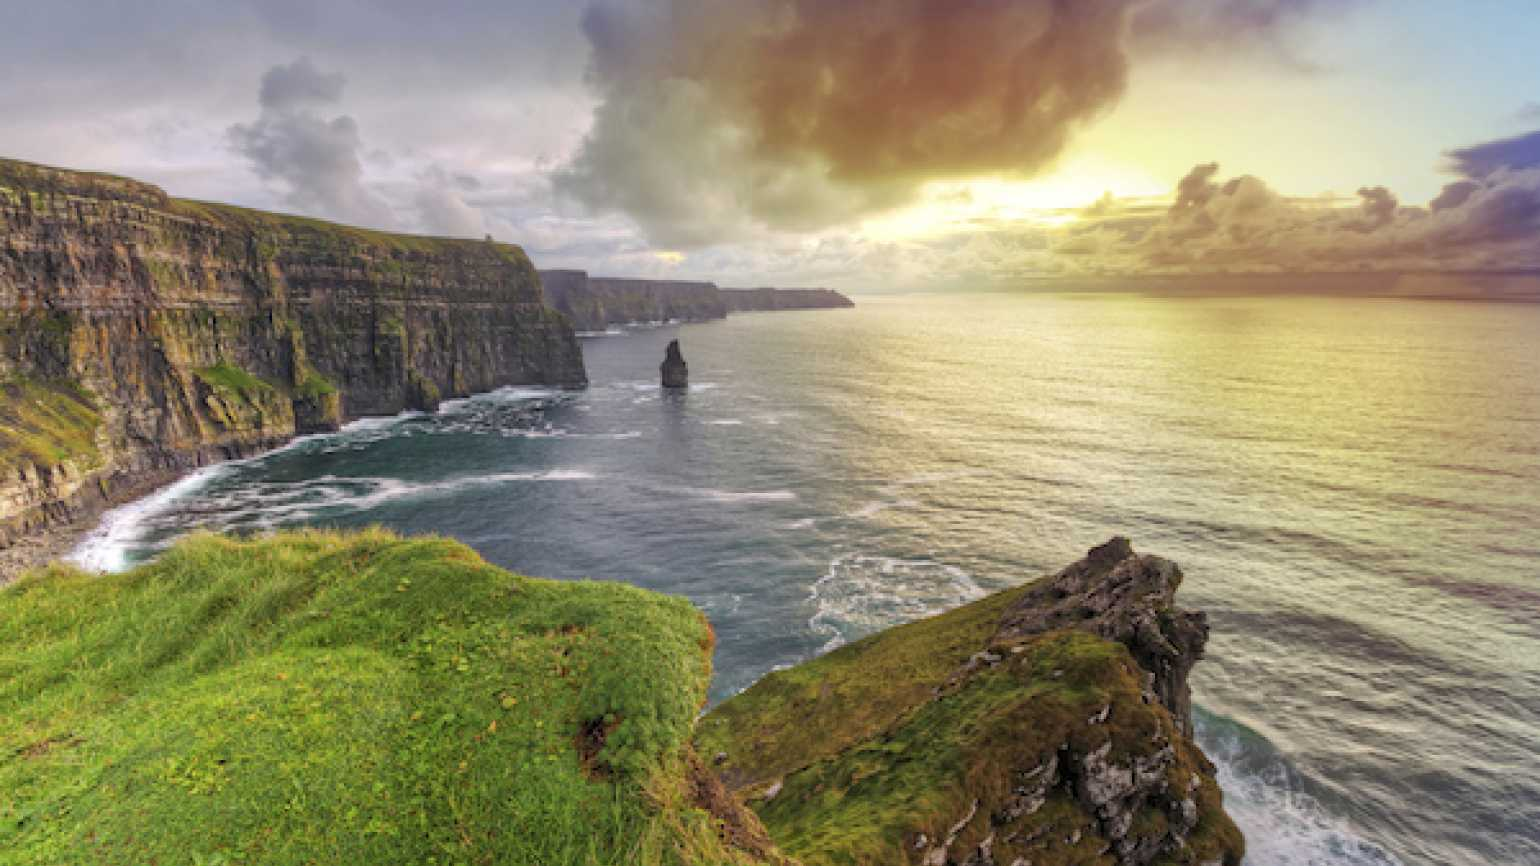 Why is God calling me to Ireland?